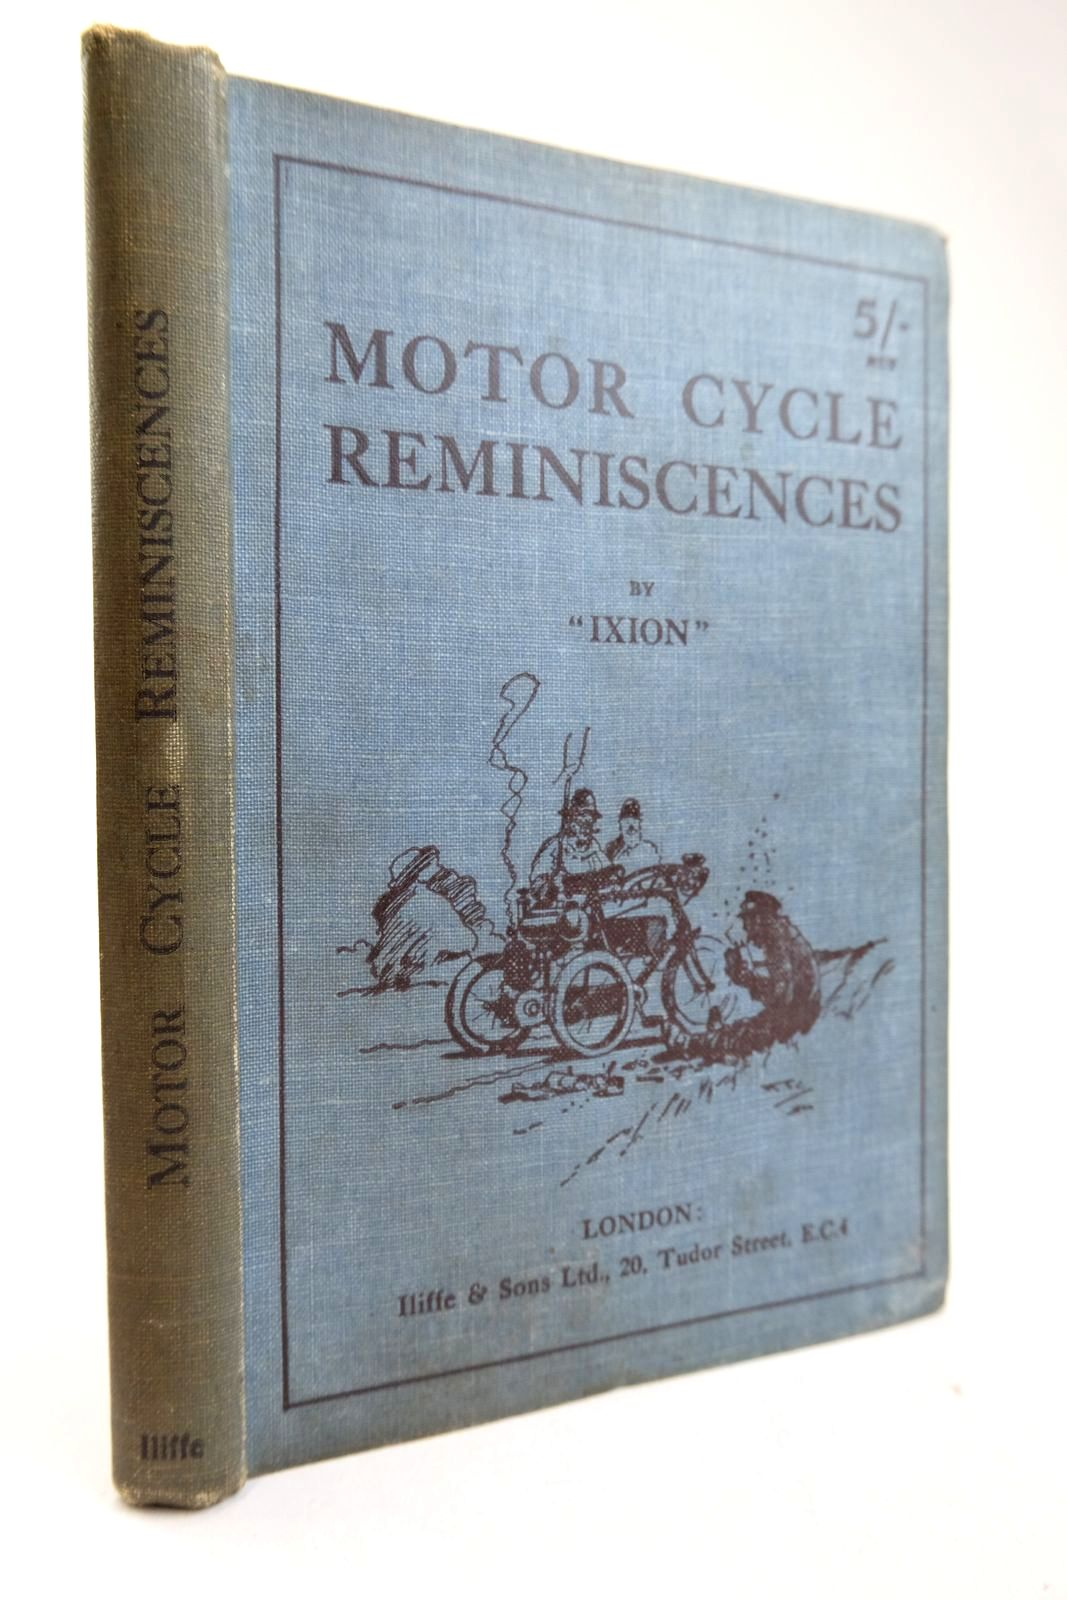 Photo of MOTOR CYCLE REMINISCENCES written by Ixion, published by Iliffe & Sons Limited (STOCK CODE: 2133362)  for sale by Stella & Rose's Books